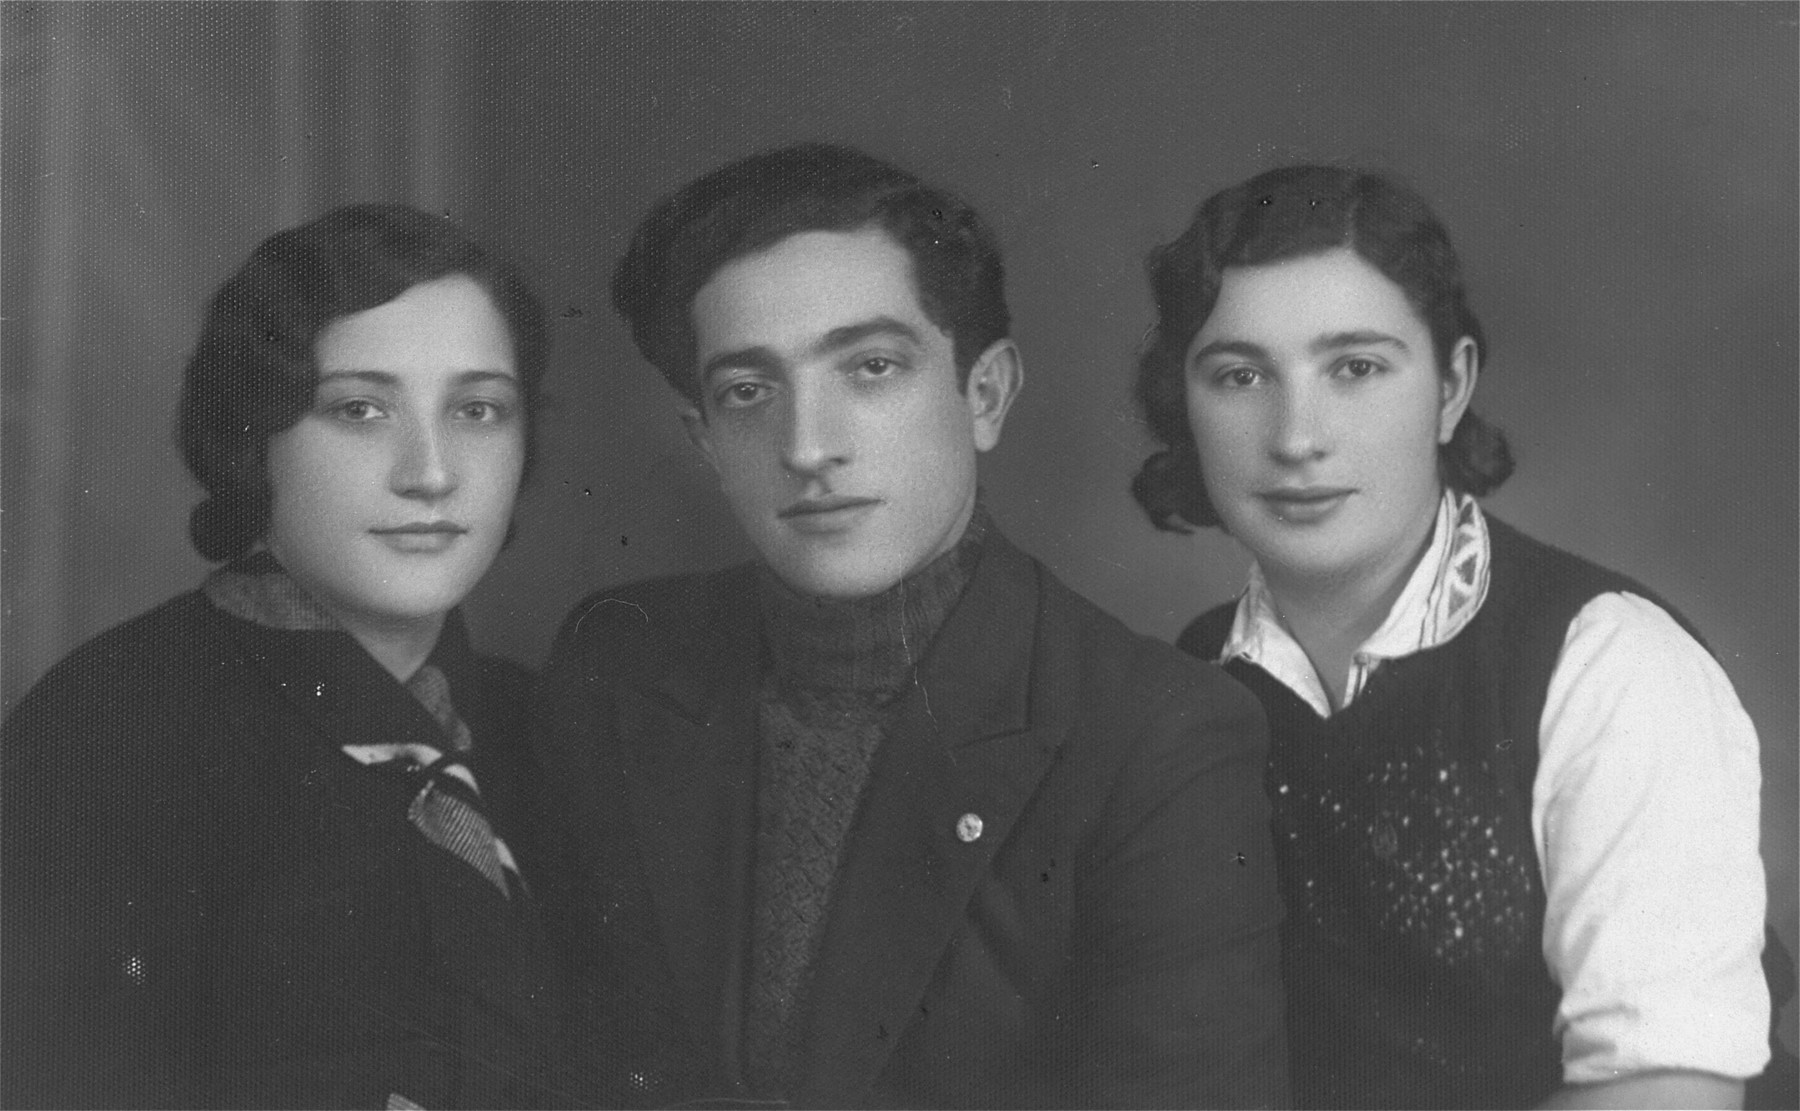 The donor's father, Eliezer Kaplan poses with two friends from the Zionist movement in Lithuania.